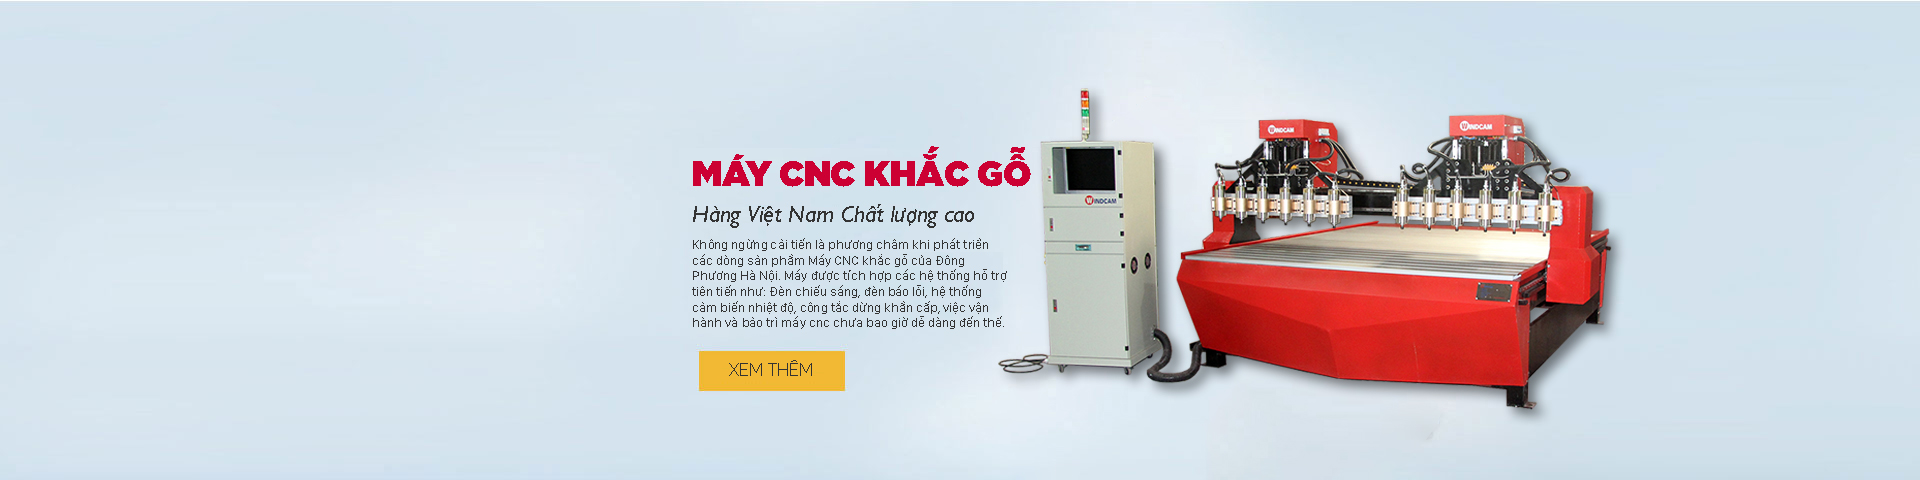 http://windcam.vn/may-cnc